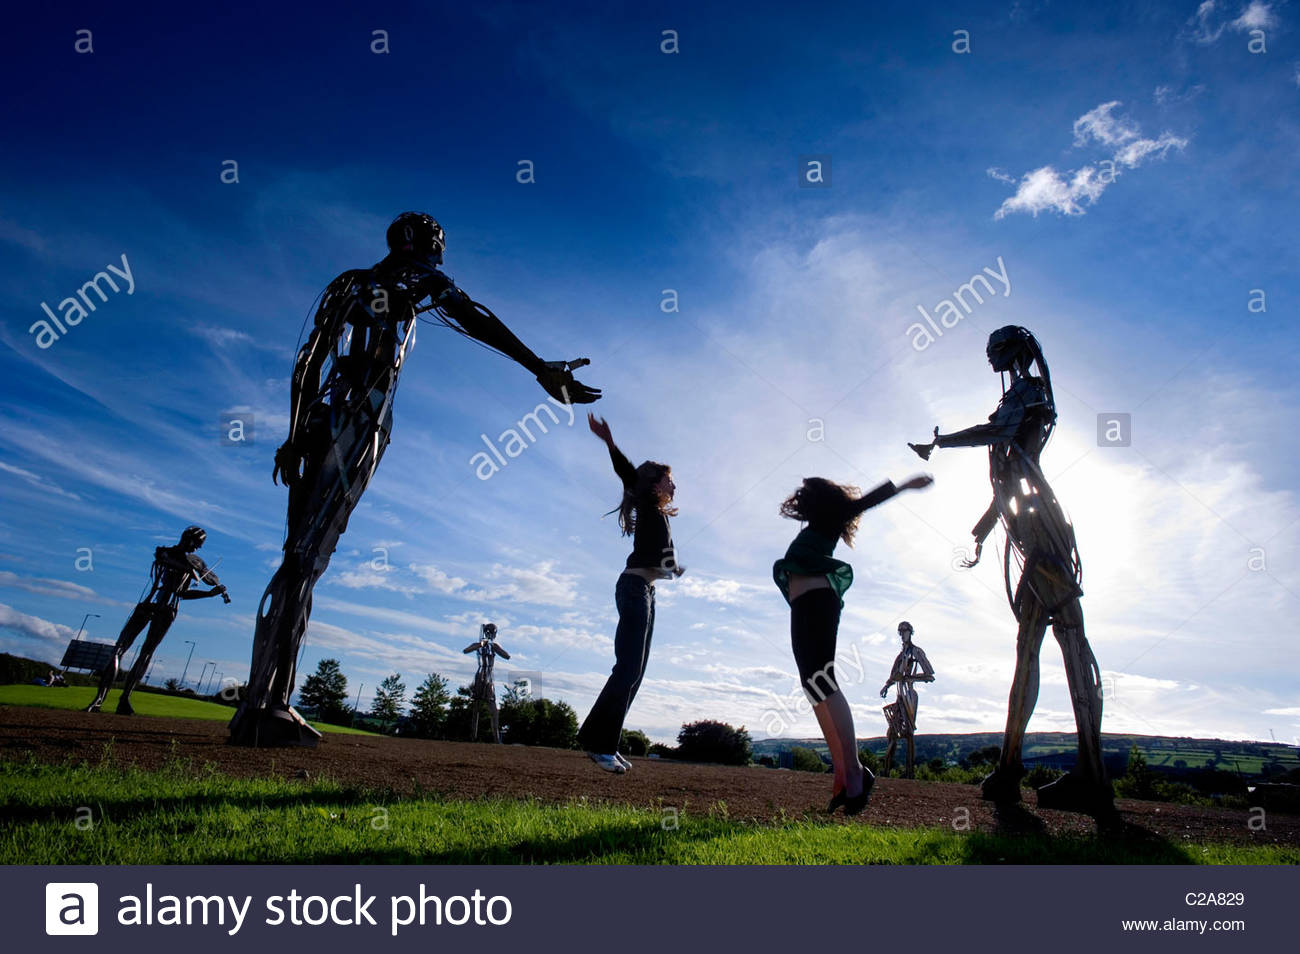 Children playing at a public art sculpture in Strabane, Ulster. Stock Foto